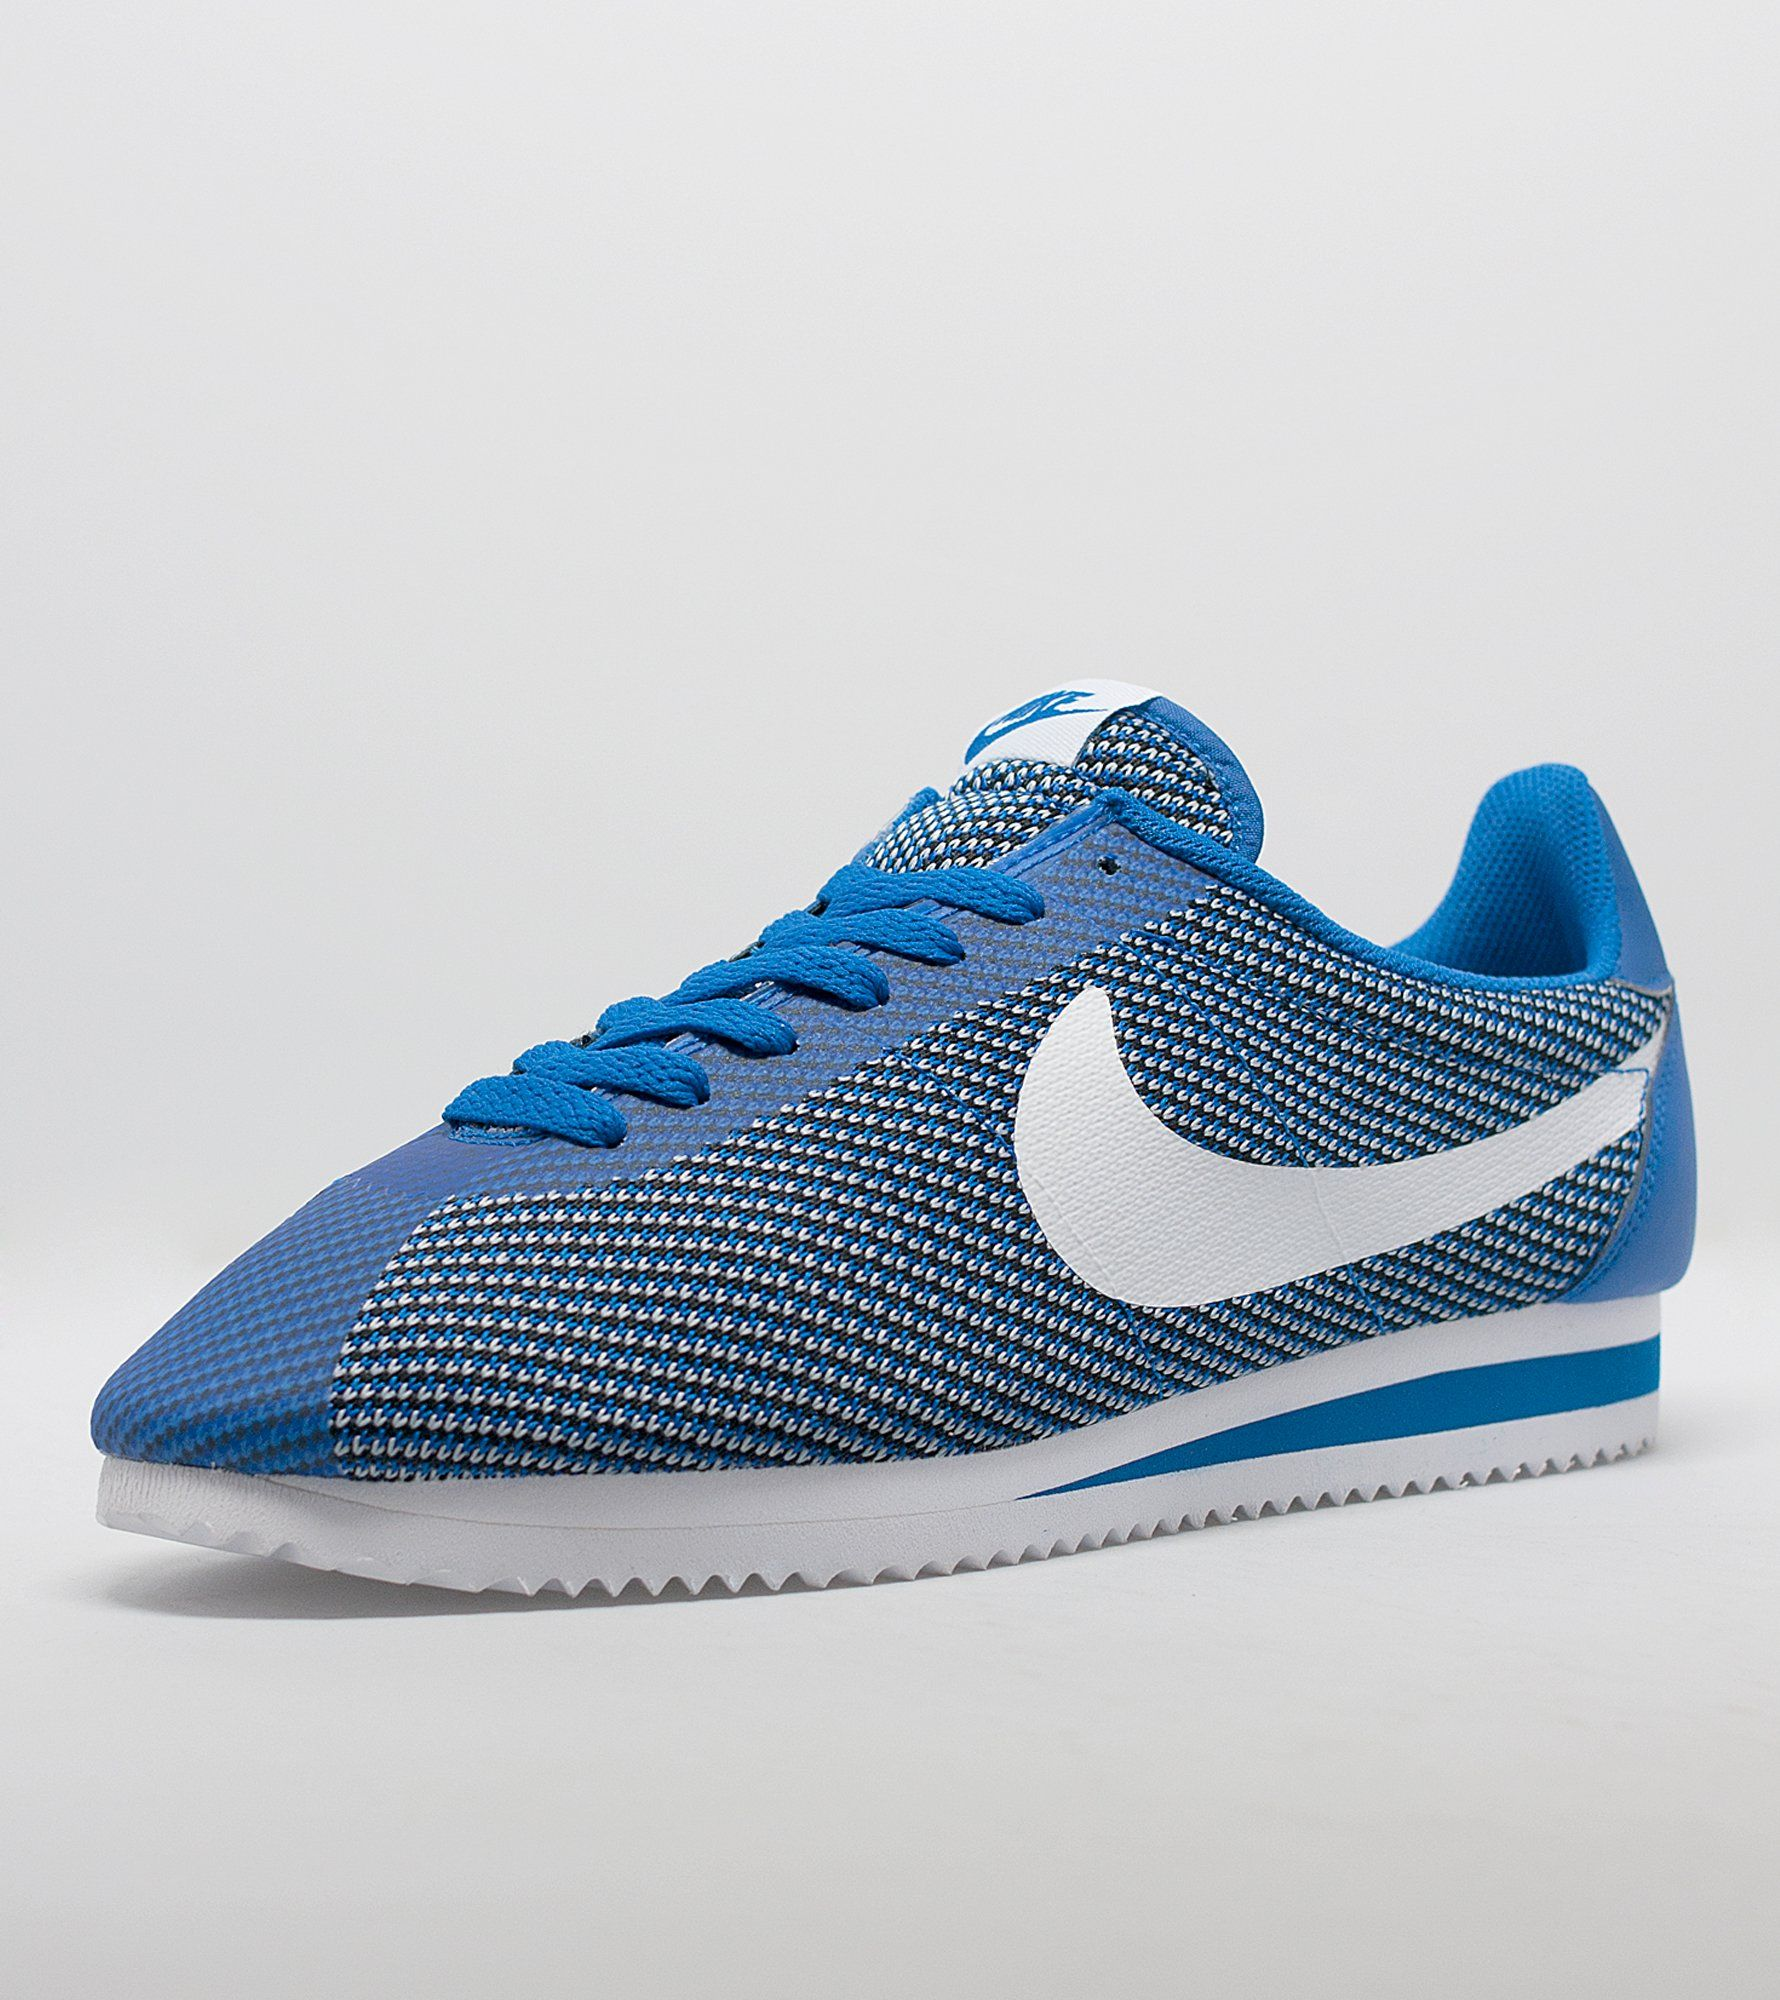 hot sales 49bc9 ae604 nike cortez midnight blue christmas